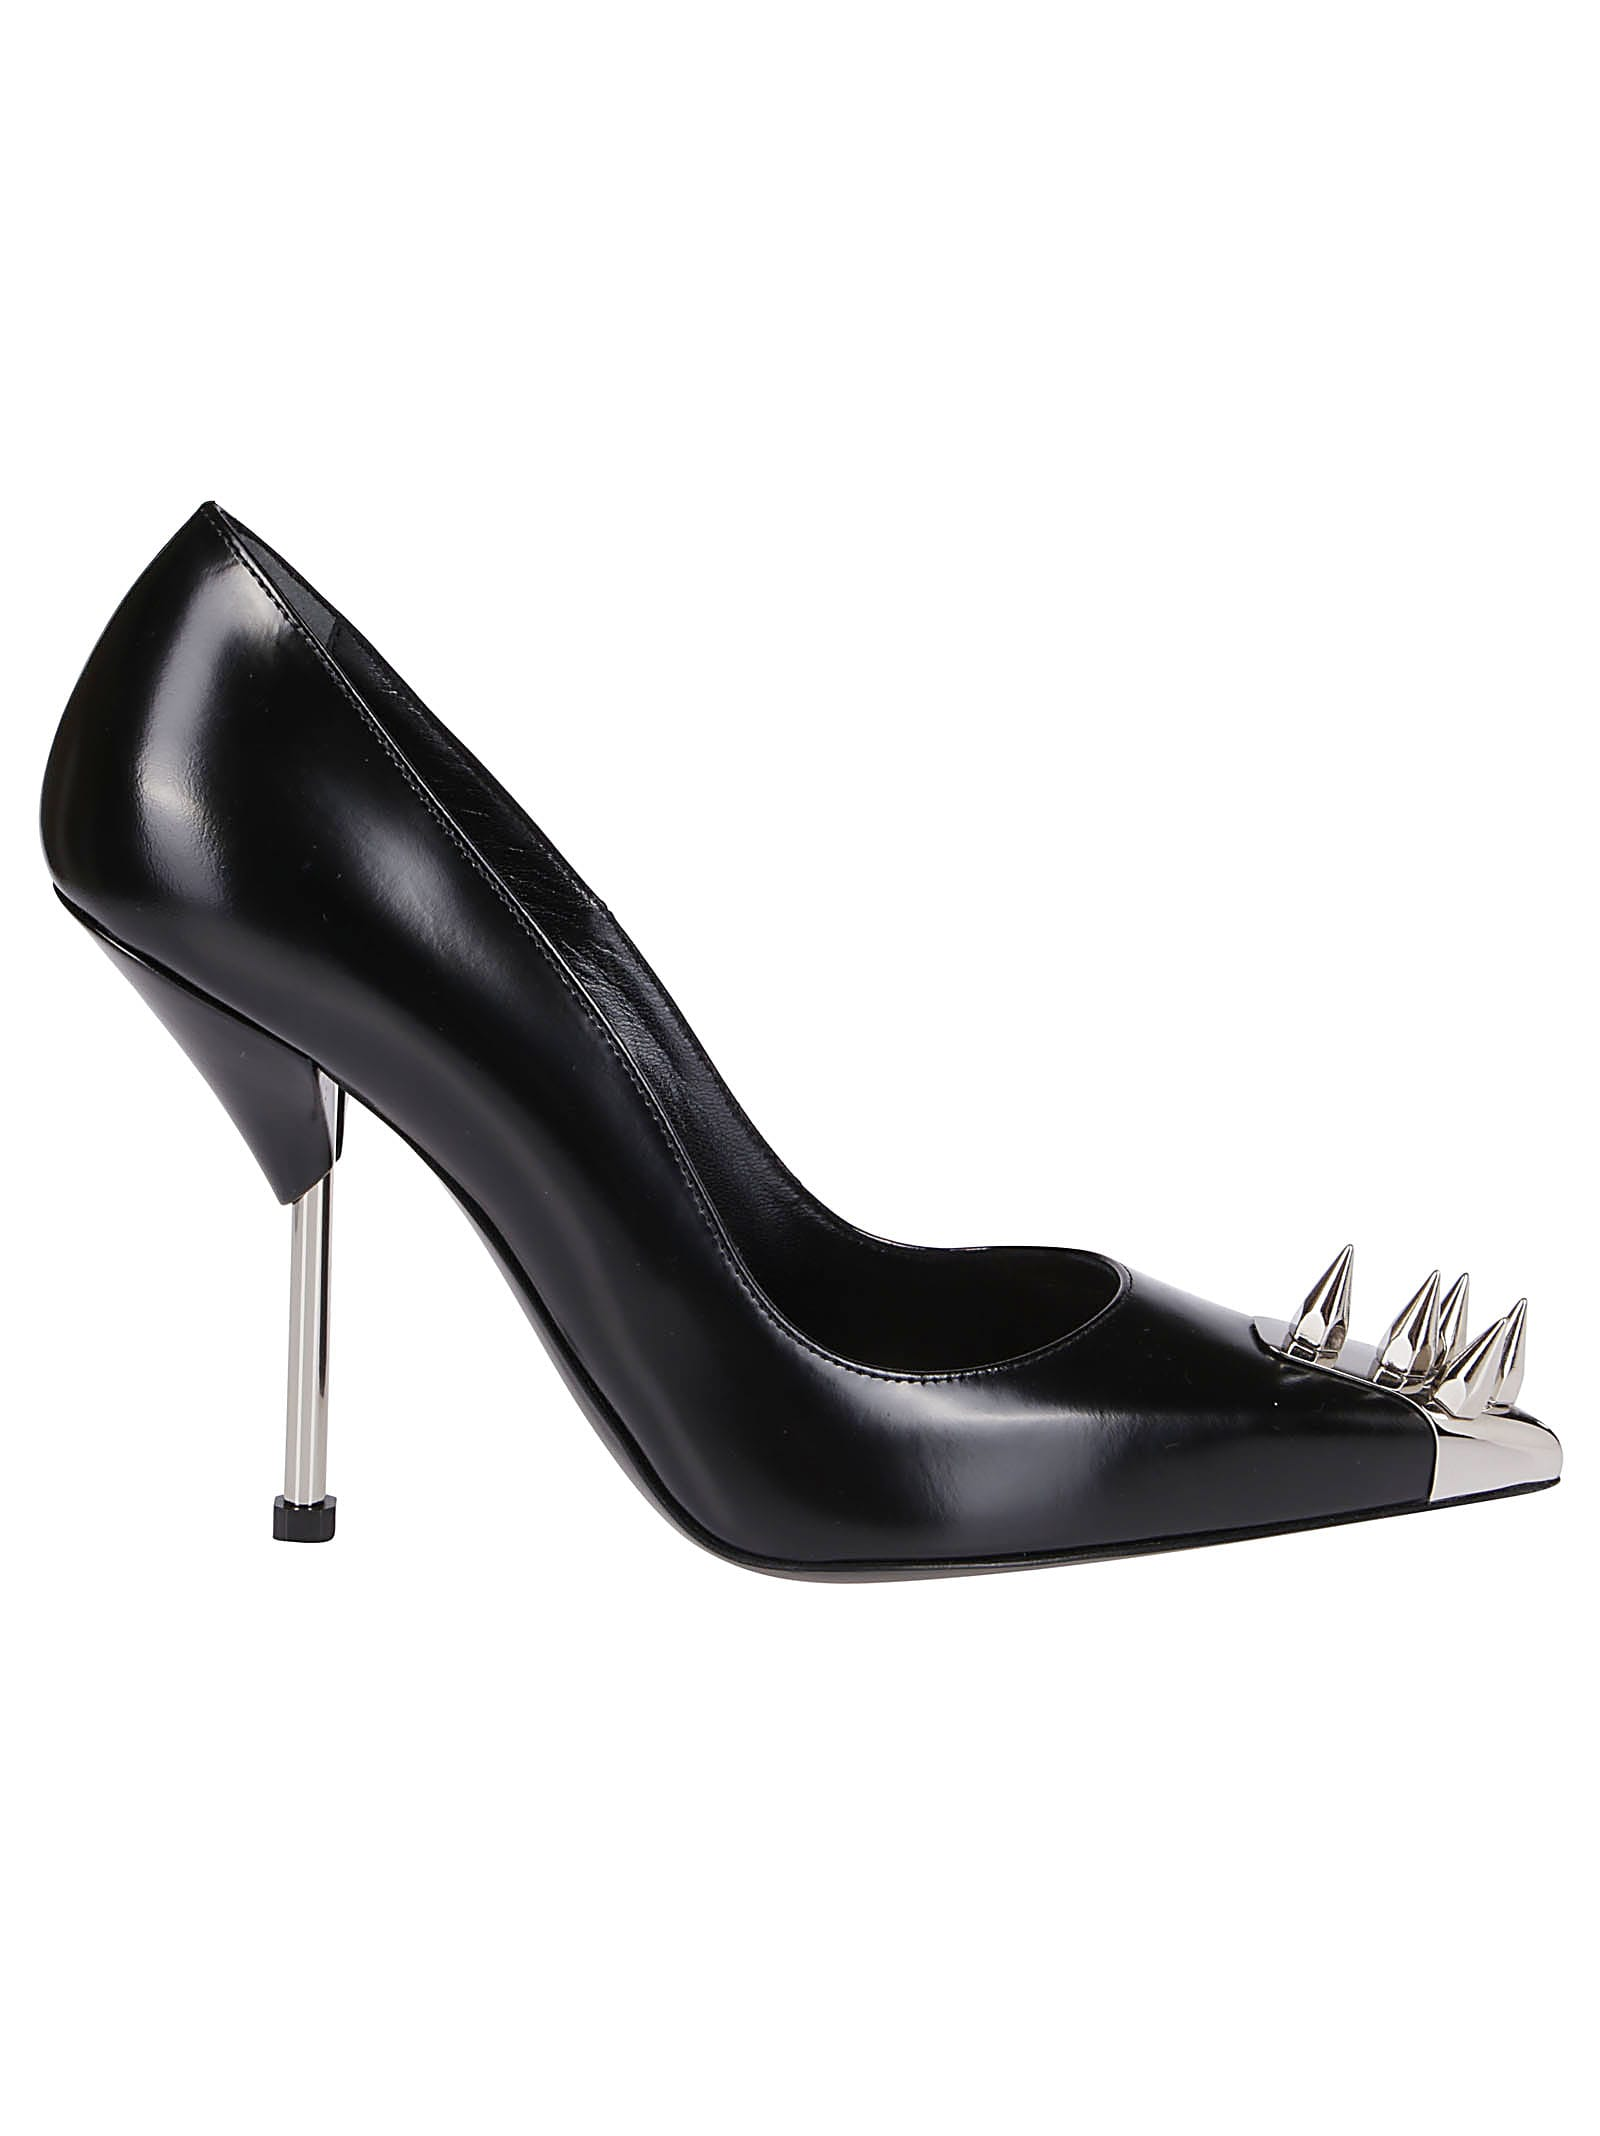 Buy Alexander McQueen Black Leather Punk Stud Pumps online, shop Alexander McQueen shoes with free shipping